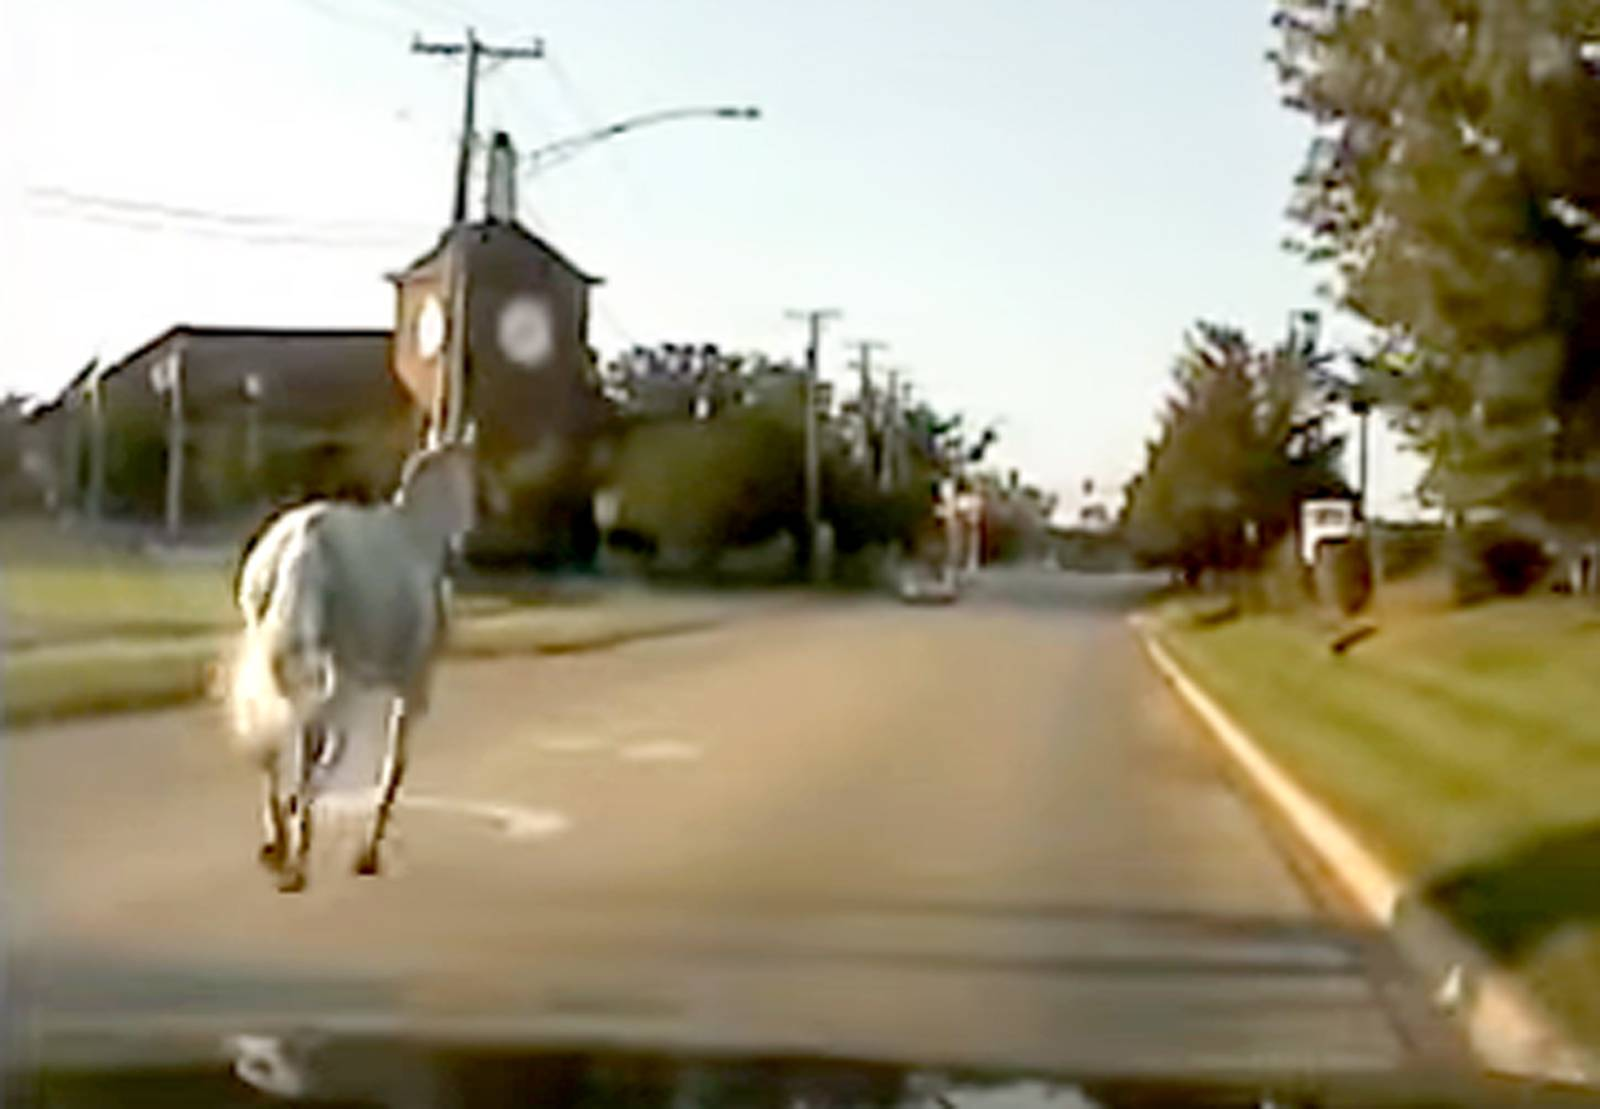 See dashcam footage from a Wauconda police car in pursuit of a horse that broke free and ran through the village Tuesday.